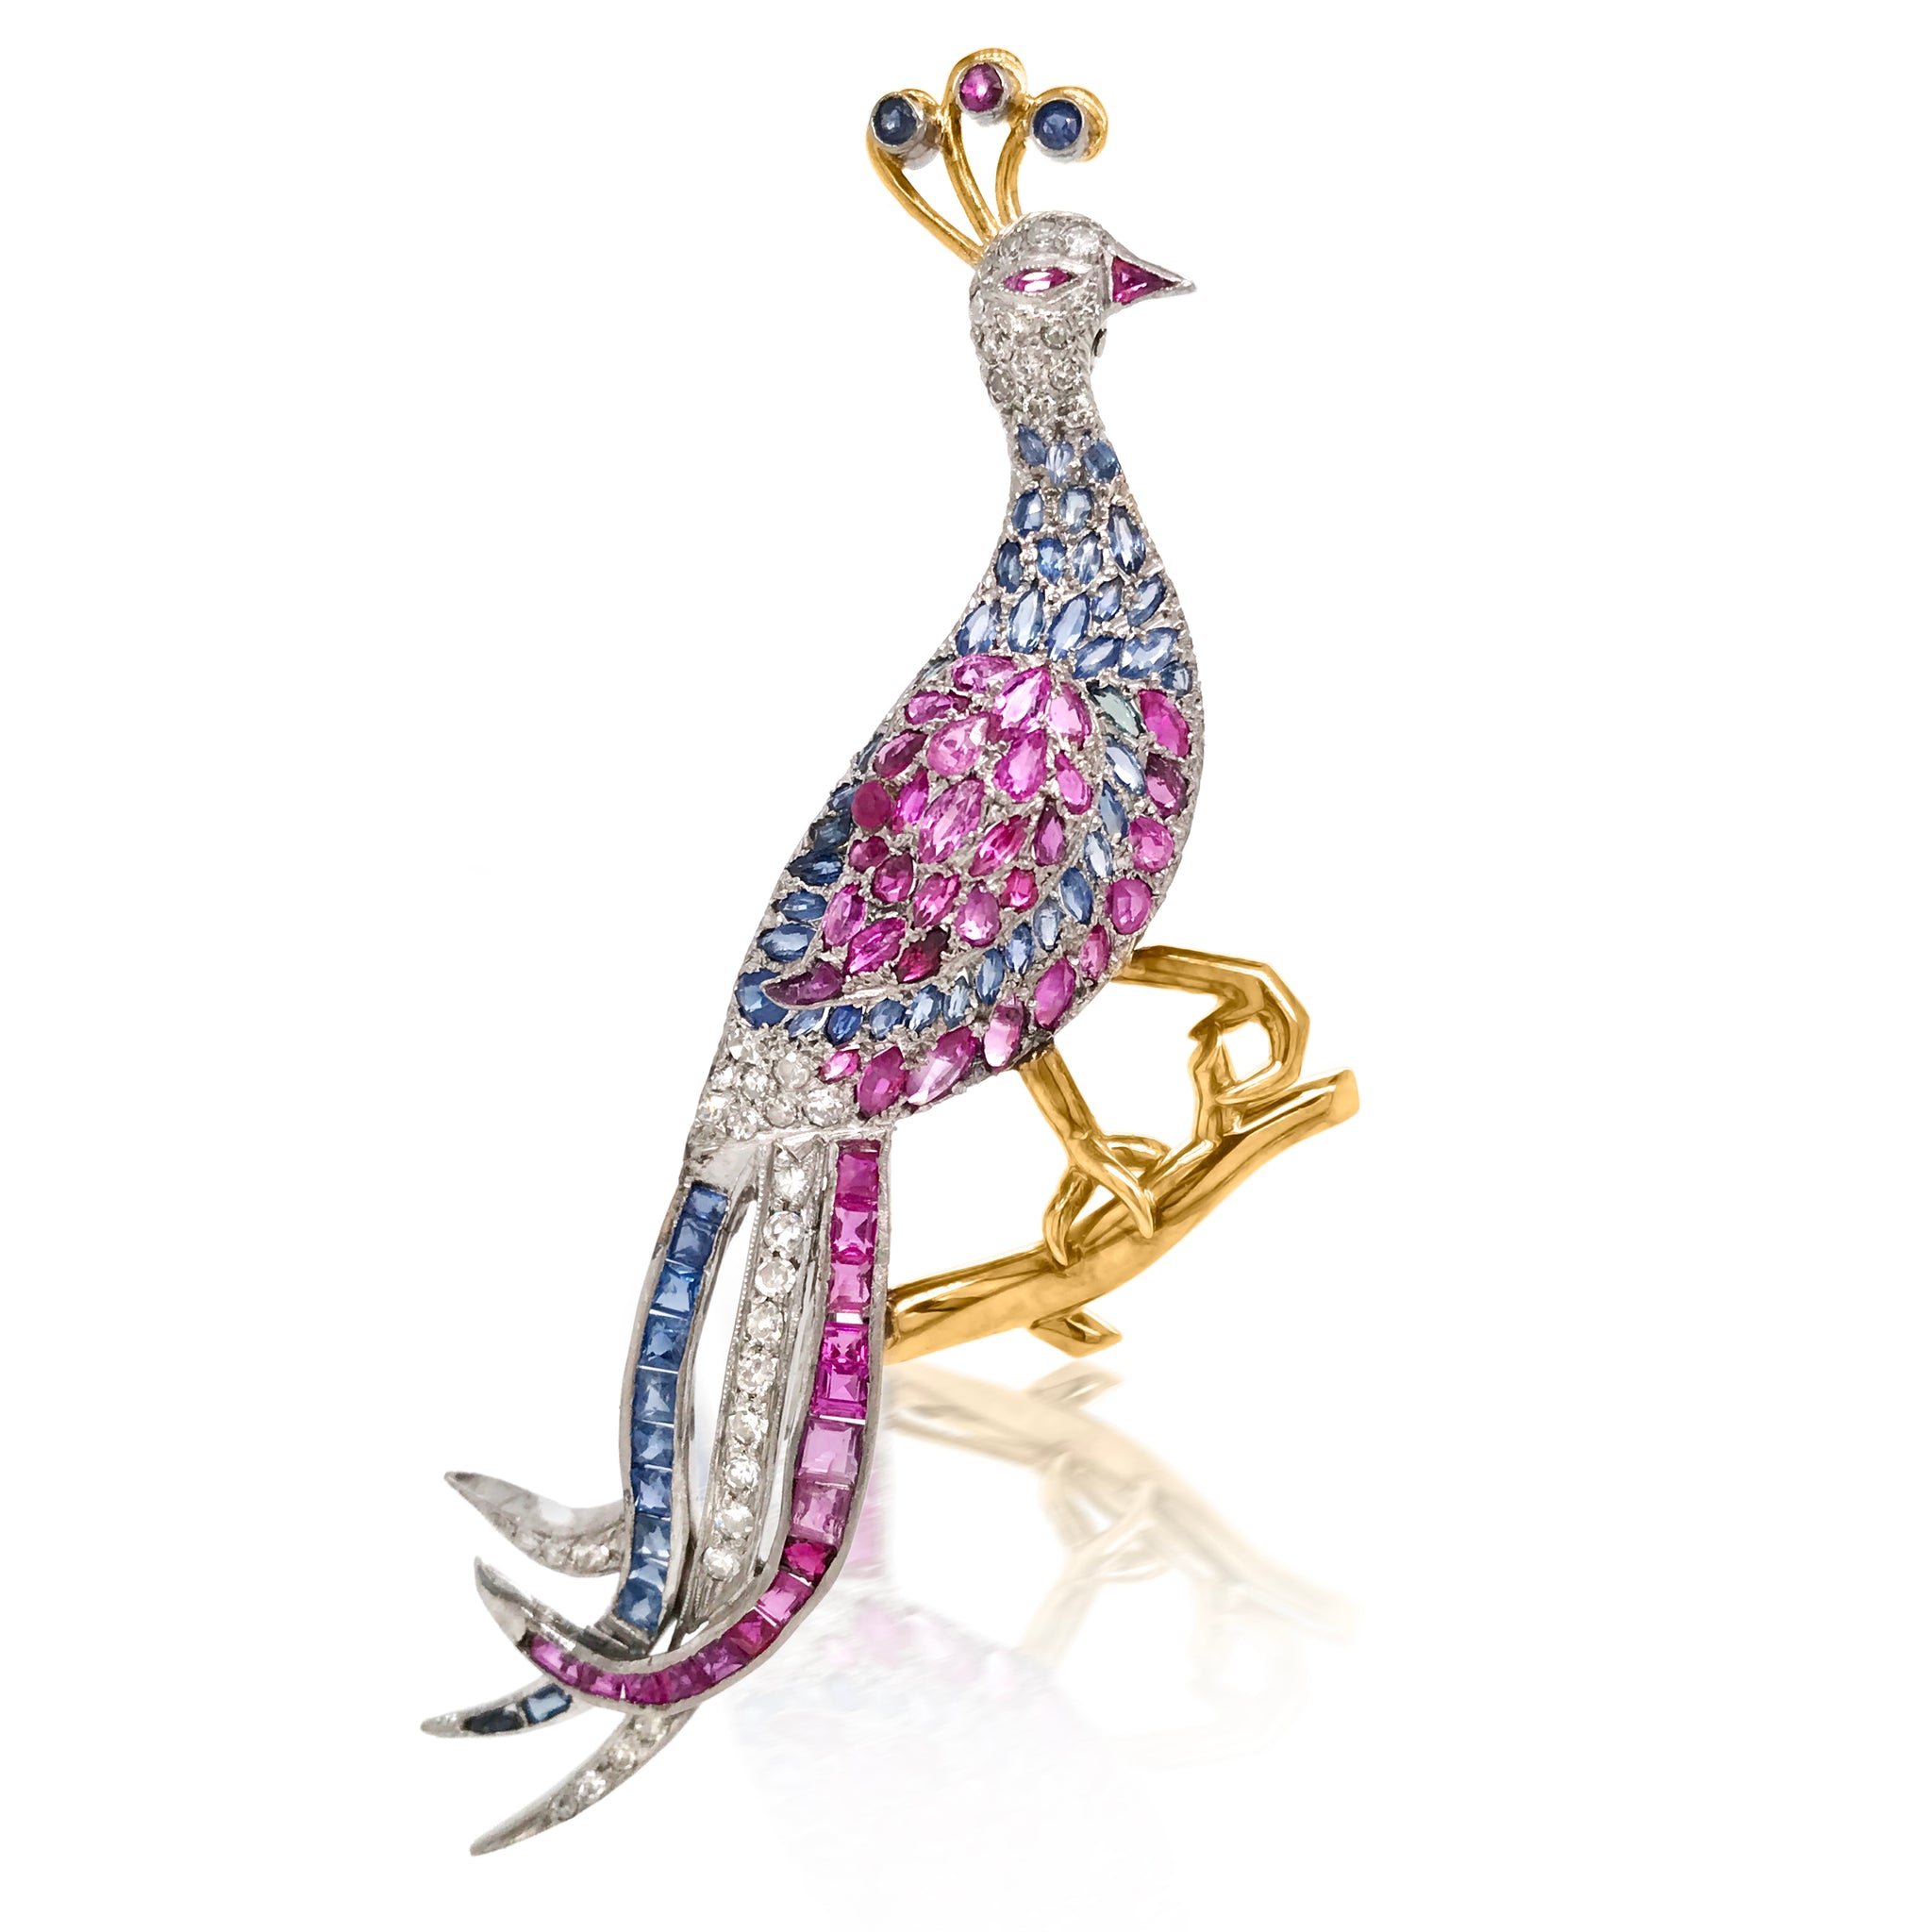 Diamond Sapphire and Ruby Peacock Brooch - Lueur Jewelry